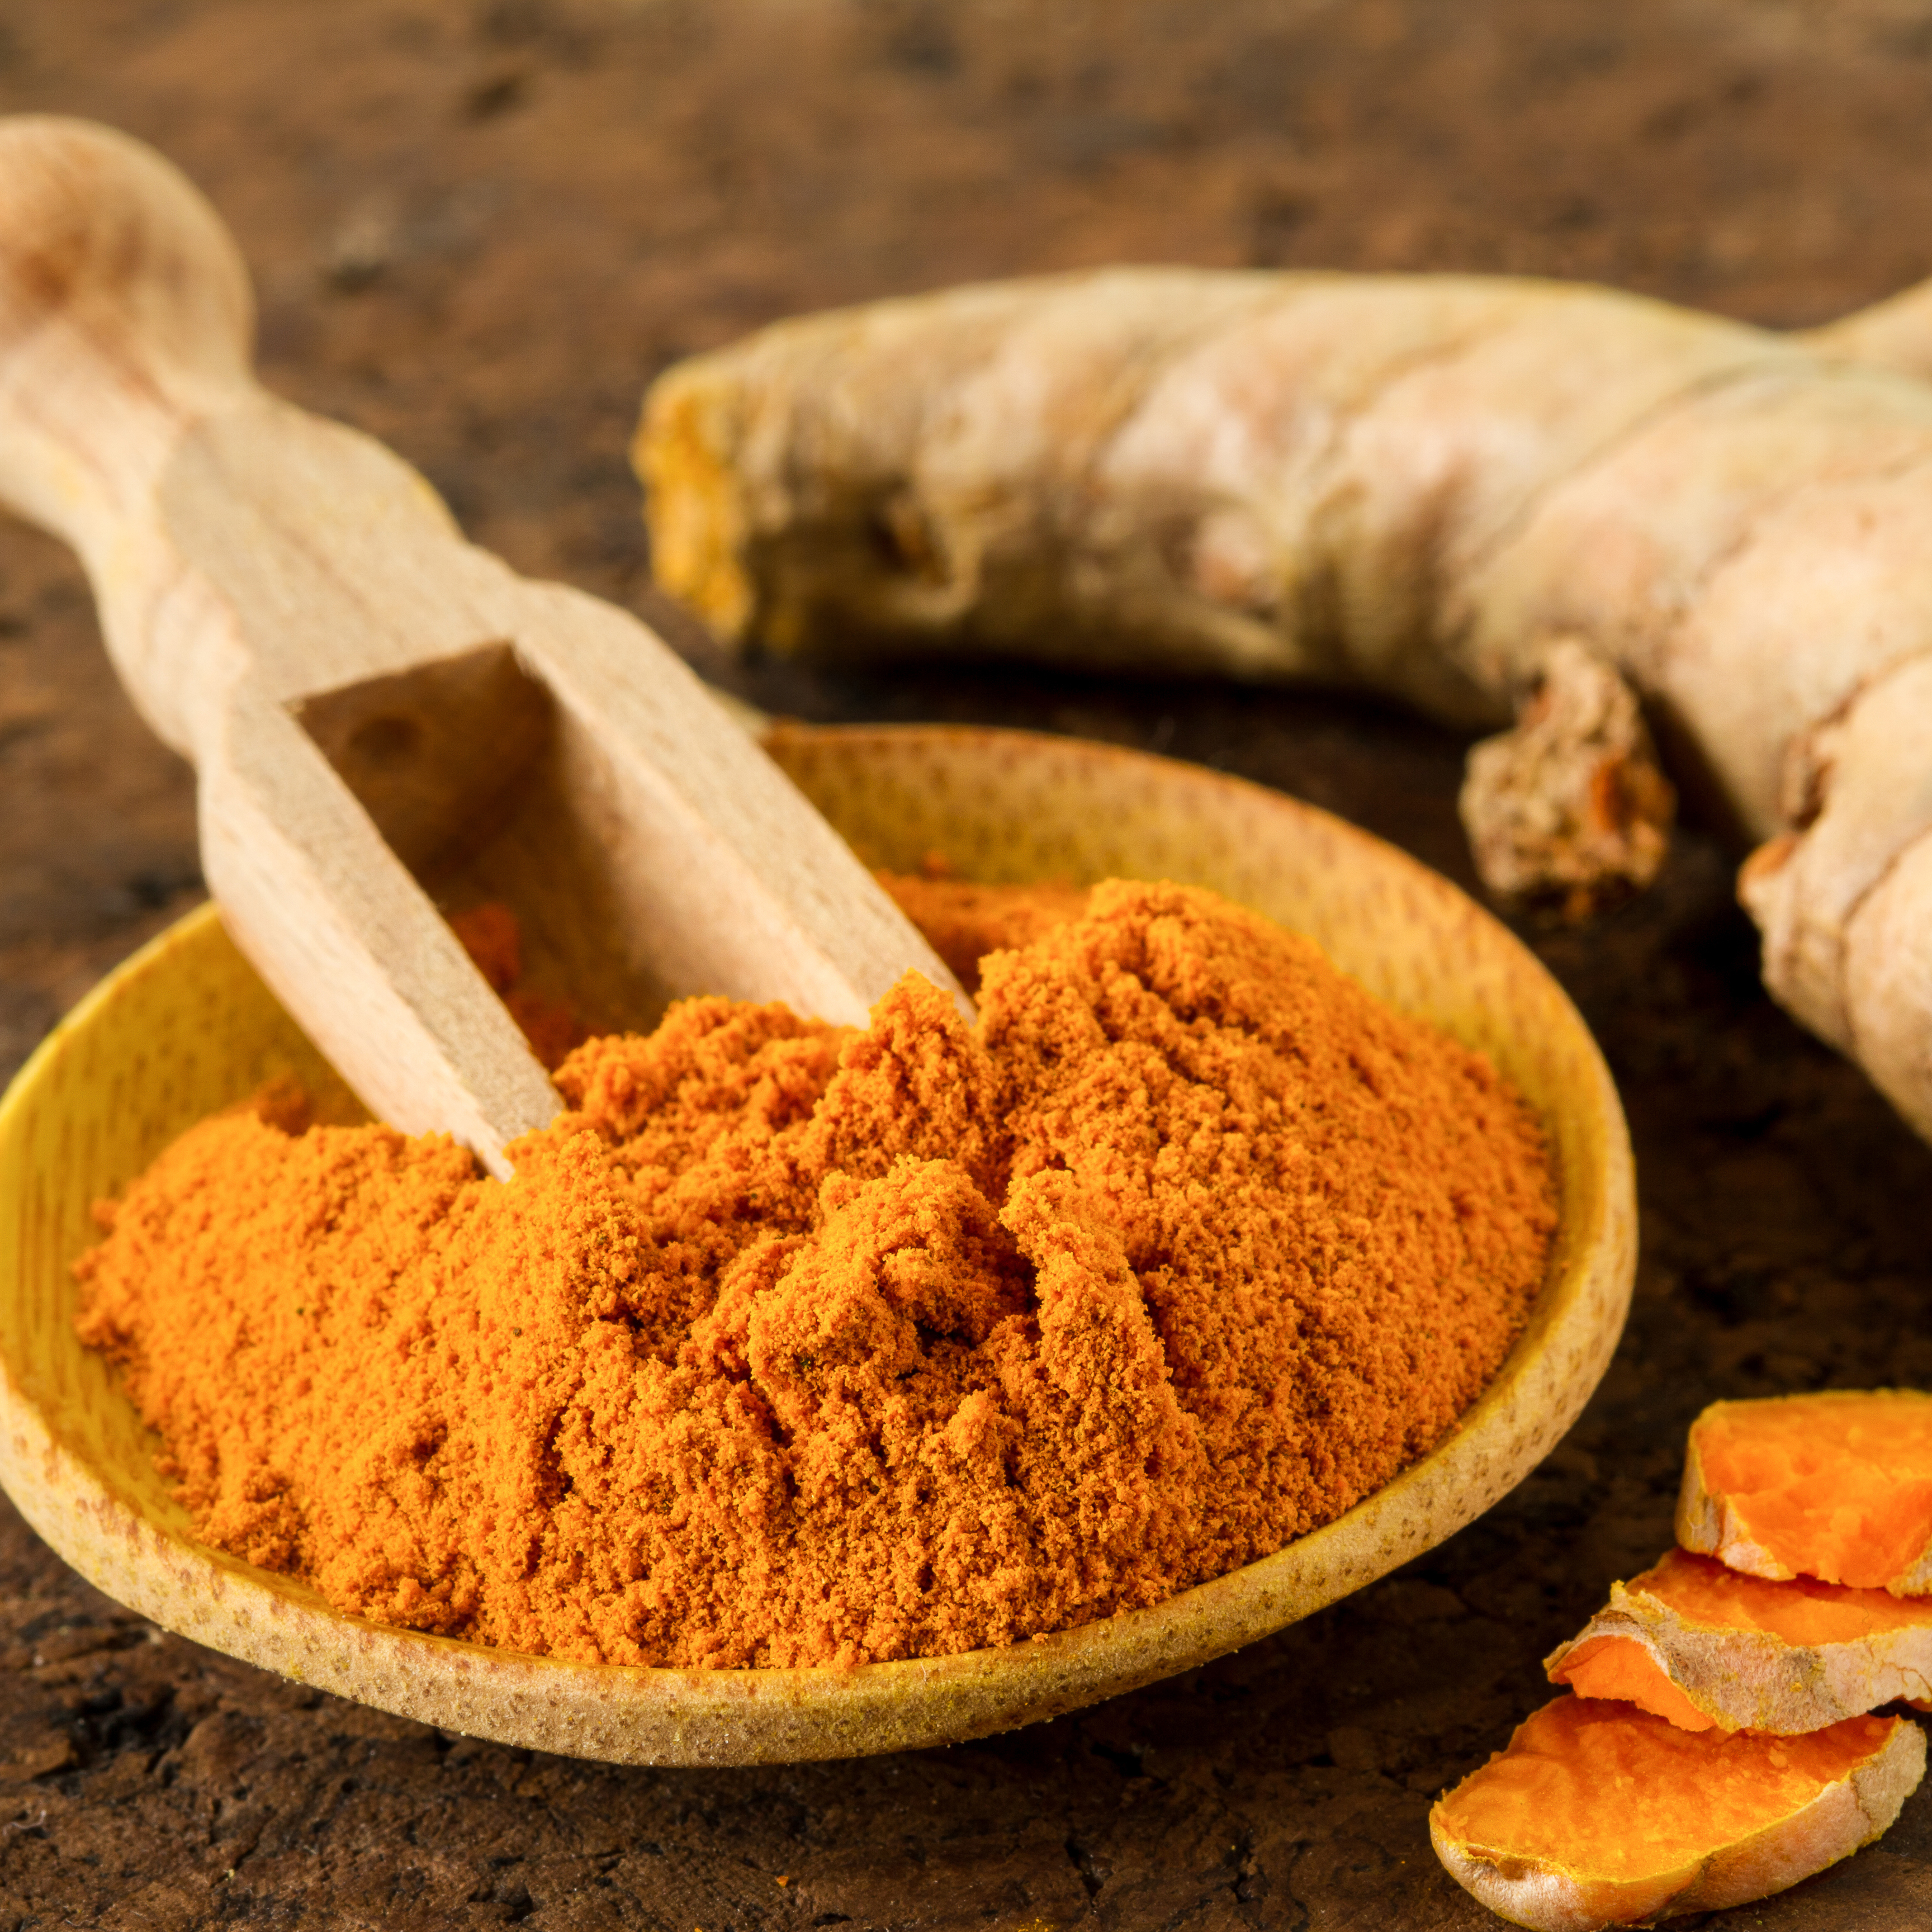 a small wooden bowl of ground turmeric and some whole turmeric root on a rough wooden surface